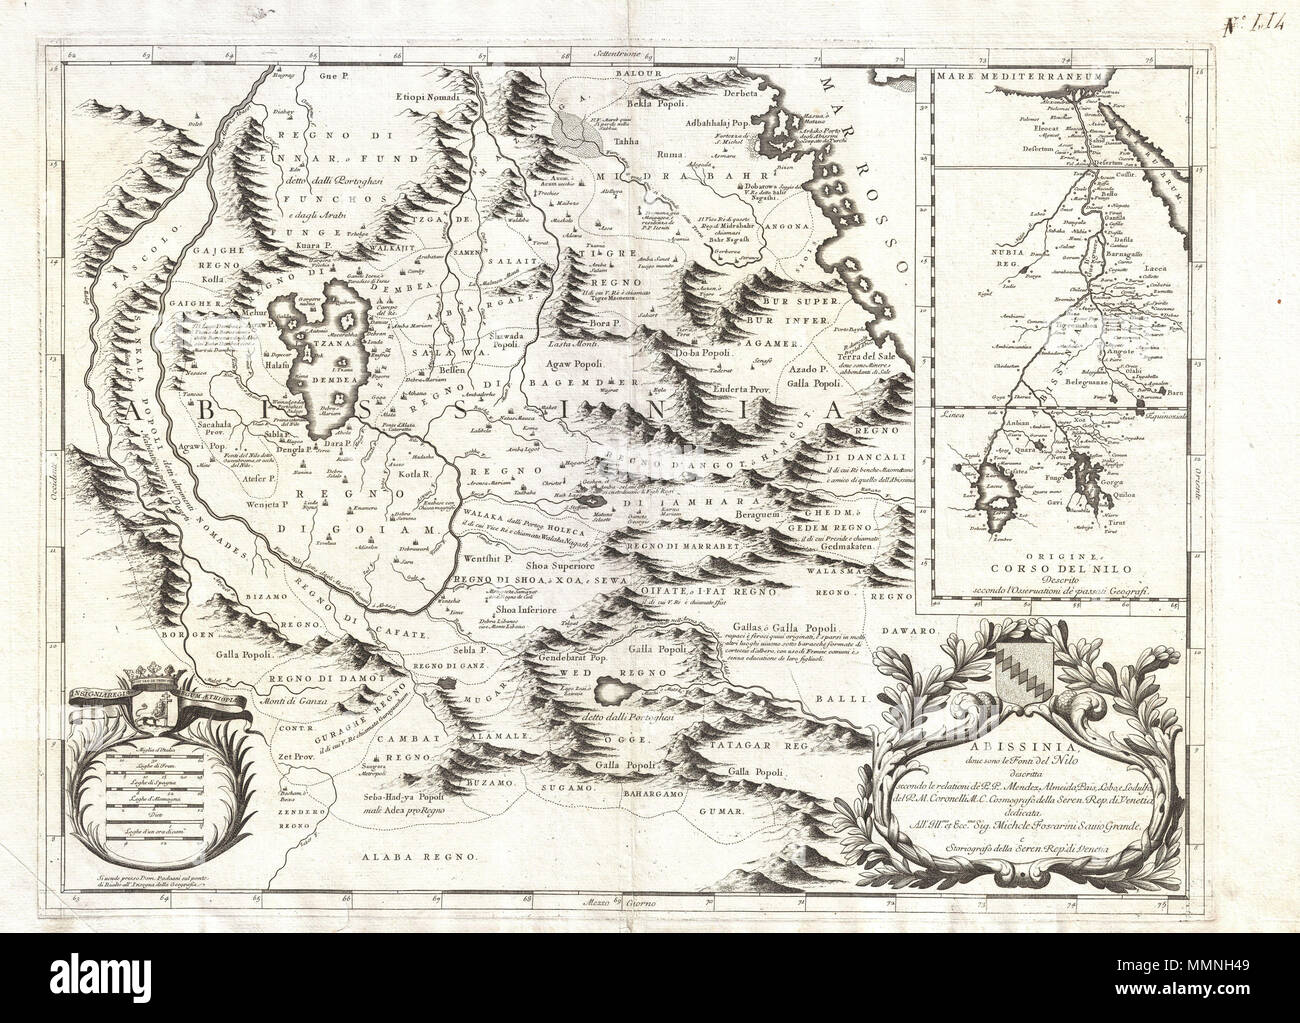 English: This is Coronelli's important 1690 map of Ethiopia ... on kingdom of rwanda map, kingdom of madagascar map, kingdom of albania map, kingdom of bhutan map, kingdom of jordan map, kingdom of norway map, kingdom of edom map, kingdom of two sicilies map, kingdom of ghana map, kingdom of congo map, kingdom of benin map, kingdom of armenia map, kingdom of russia map, kingdom of axum map, kingdom of sheba map, kingdom of cyprus map, kingdom of dahomey map, kingdom of mali map, kingdom of egypt map, kingdom of germany map,